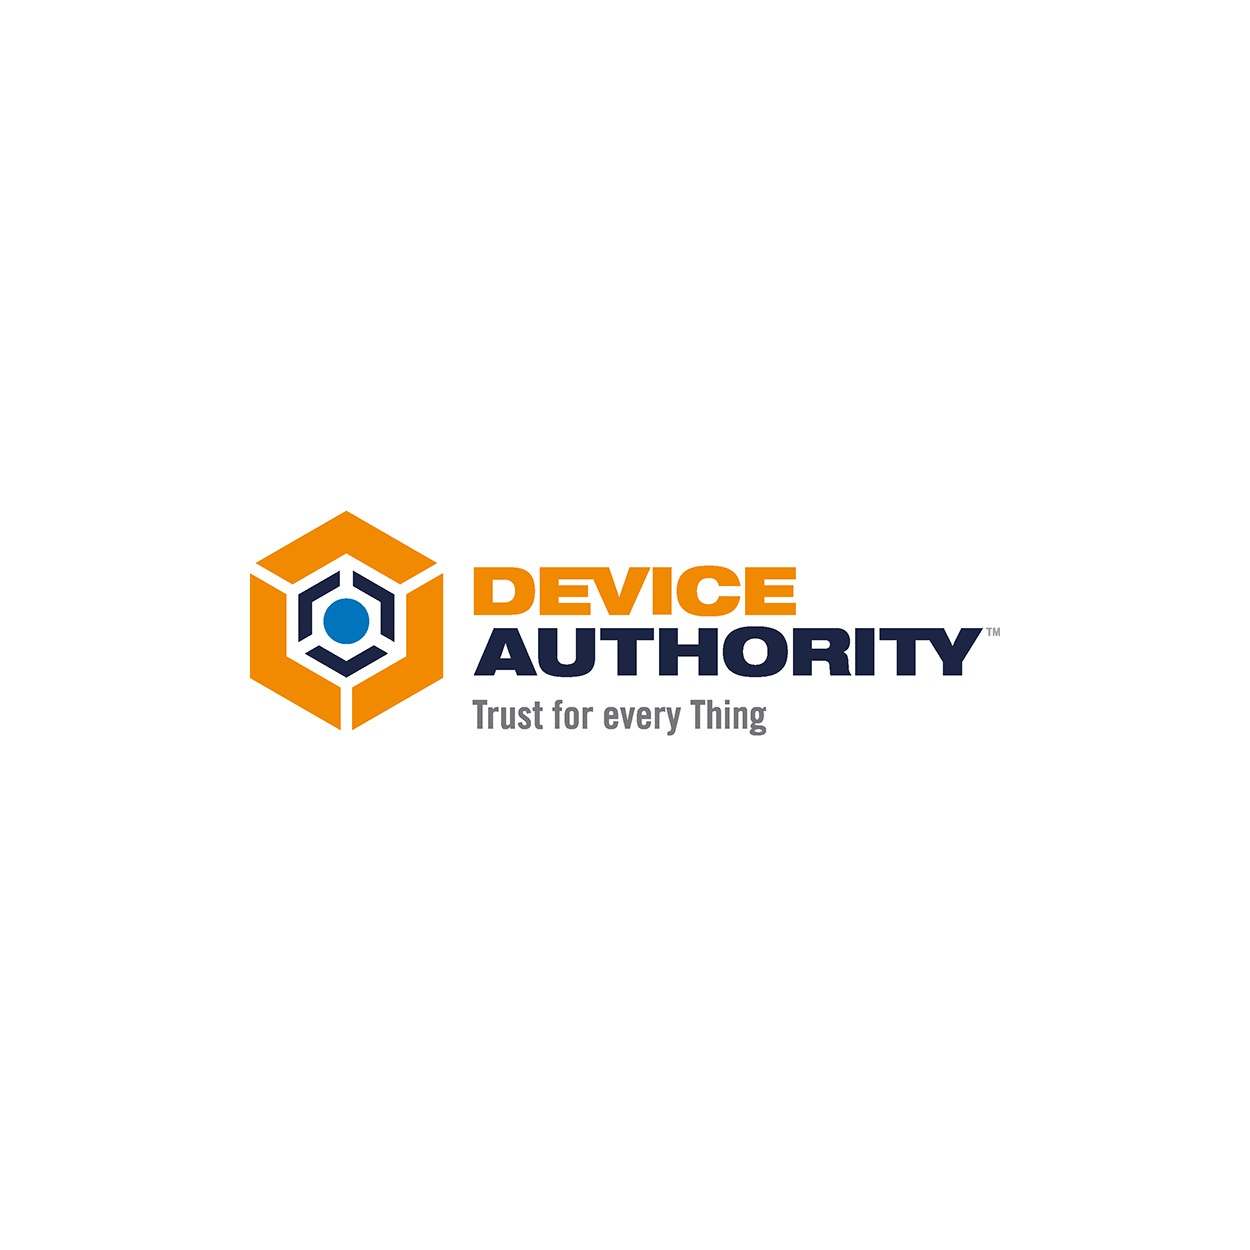 Device Authority and TeamViewer Partner to Improve Connectivity and Security in IoT